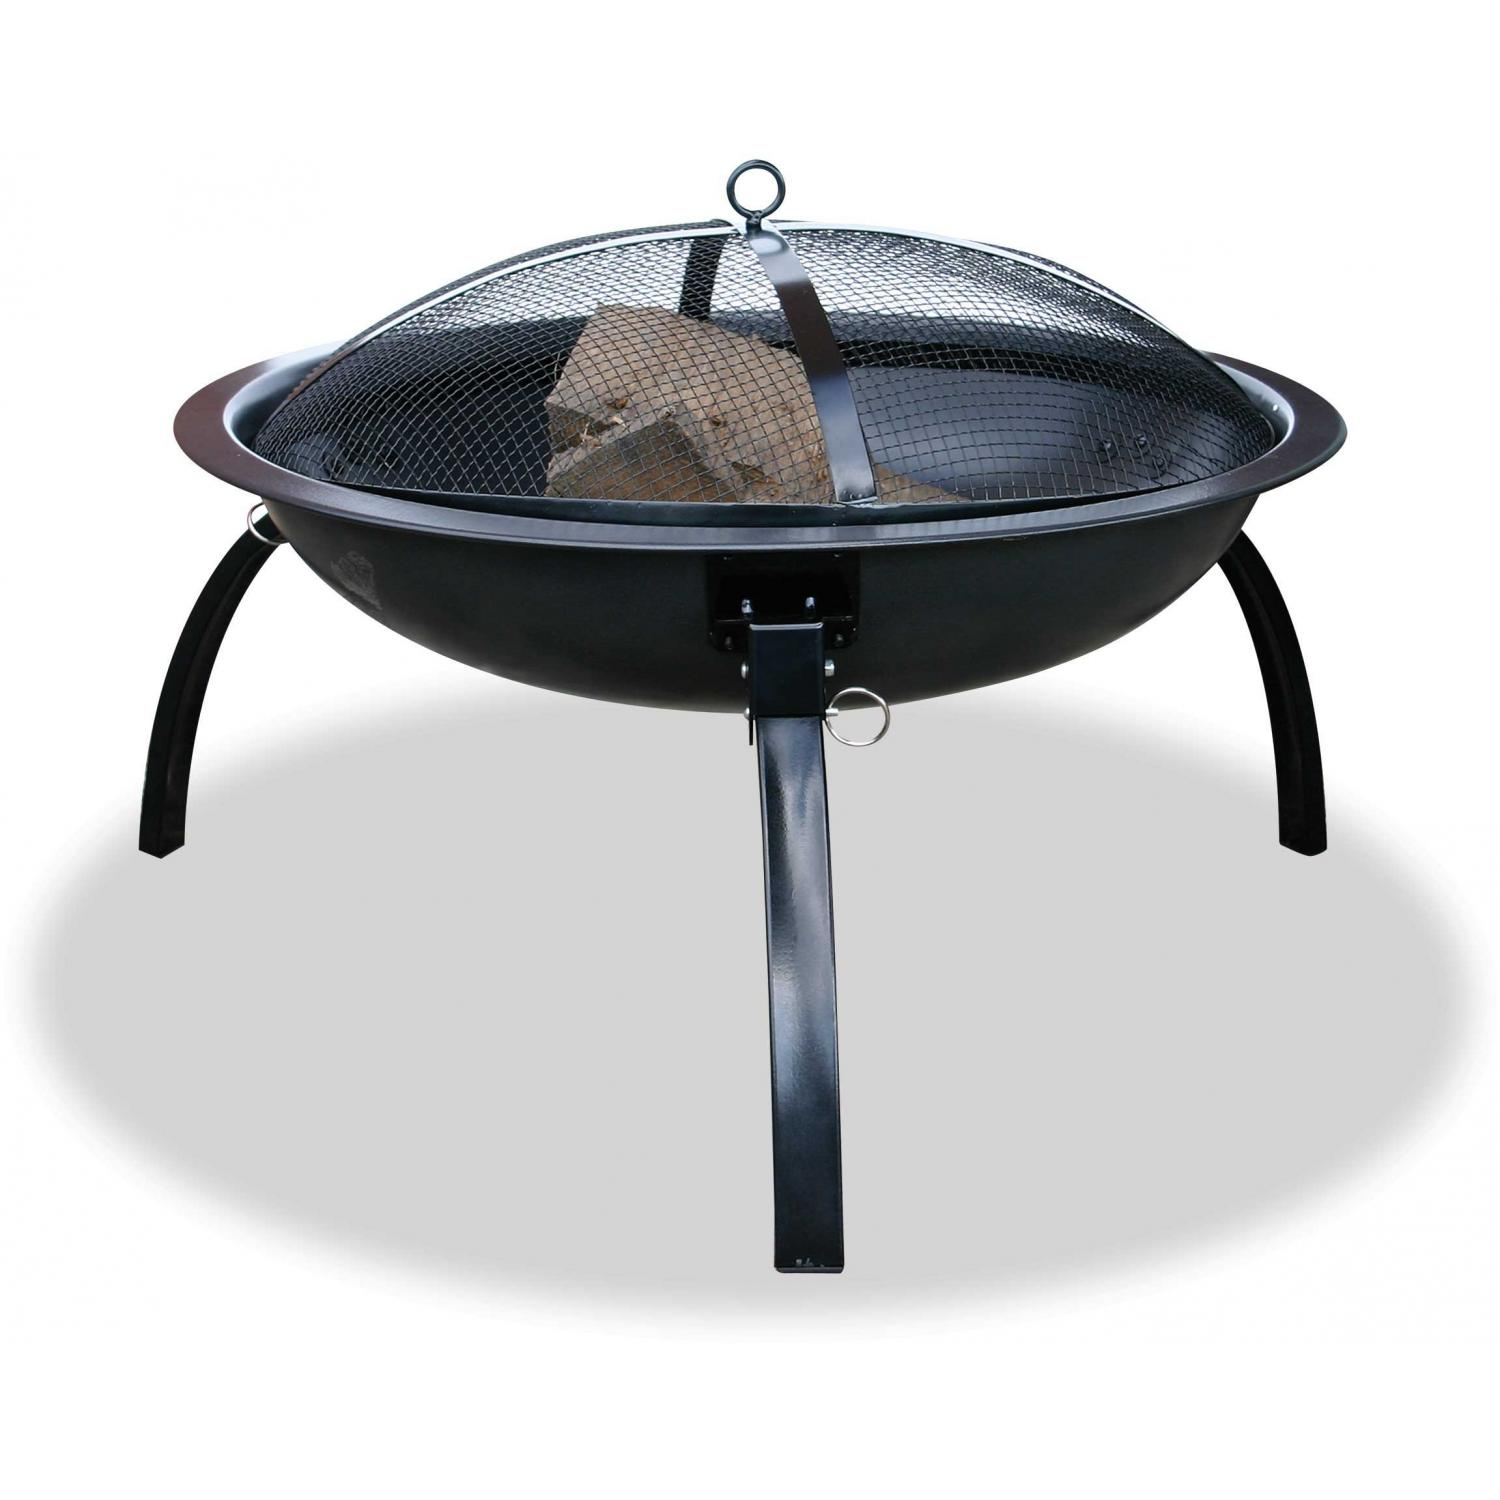 Image of: Portable Fire Pit